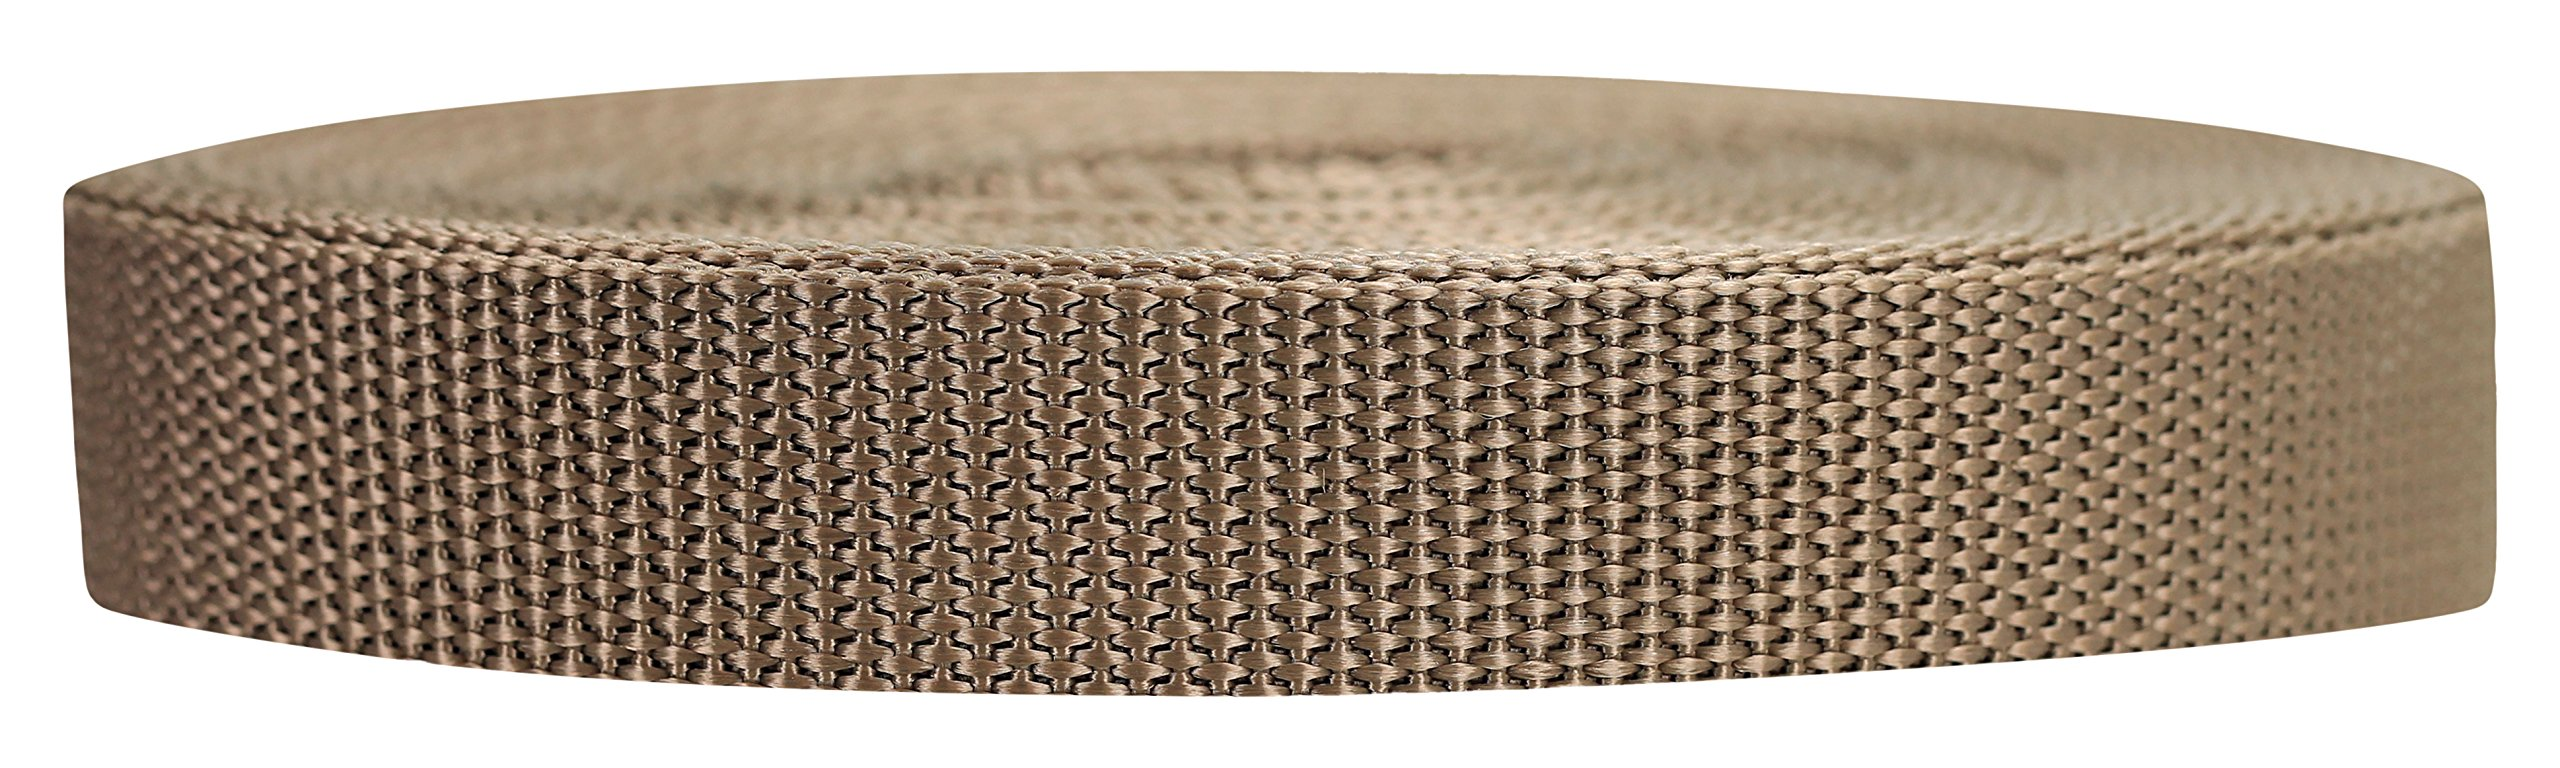 Strapworks Heavyweight Polypropylene Webbing - Heavy Duty Poly Strapping for Outdoor DIY Gear Repair, 3/4 Inch x 25 Yards, Tan by Strapworks